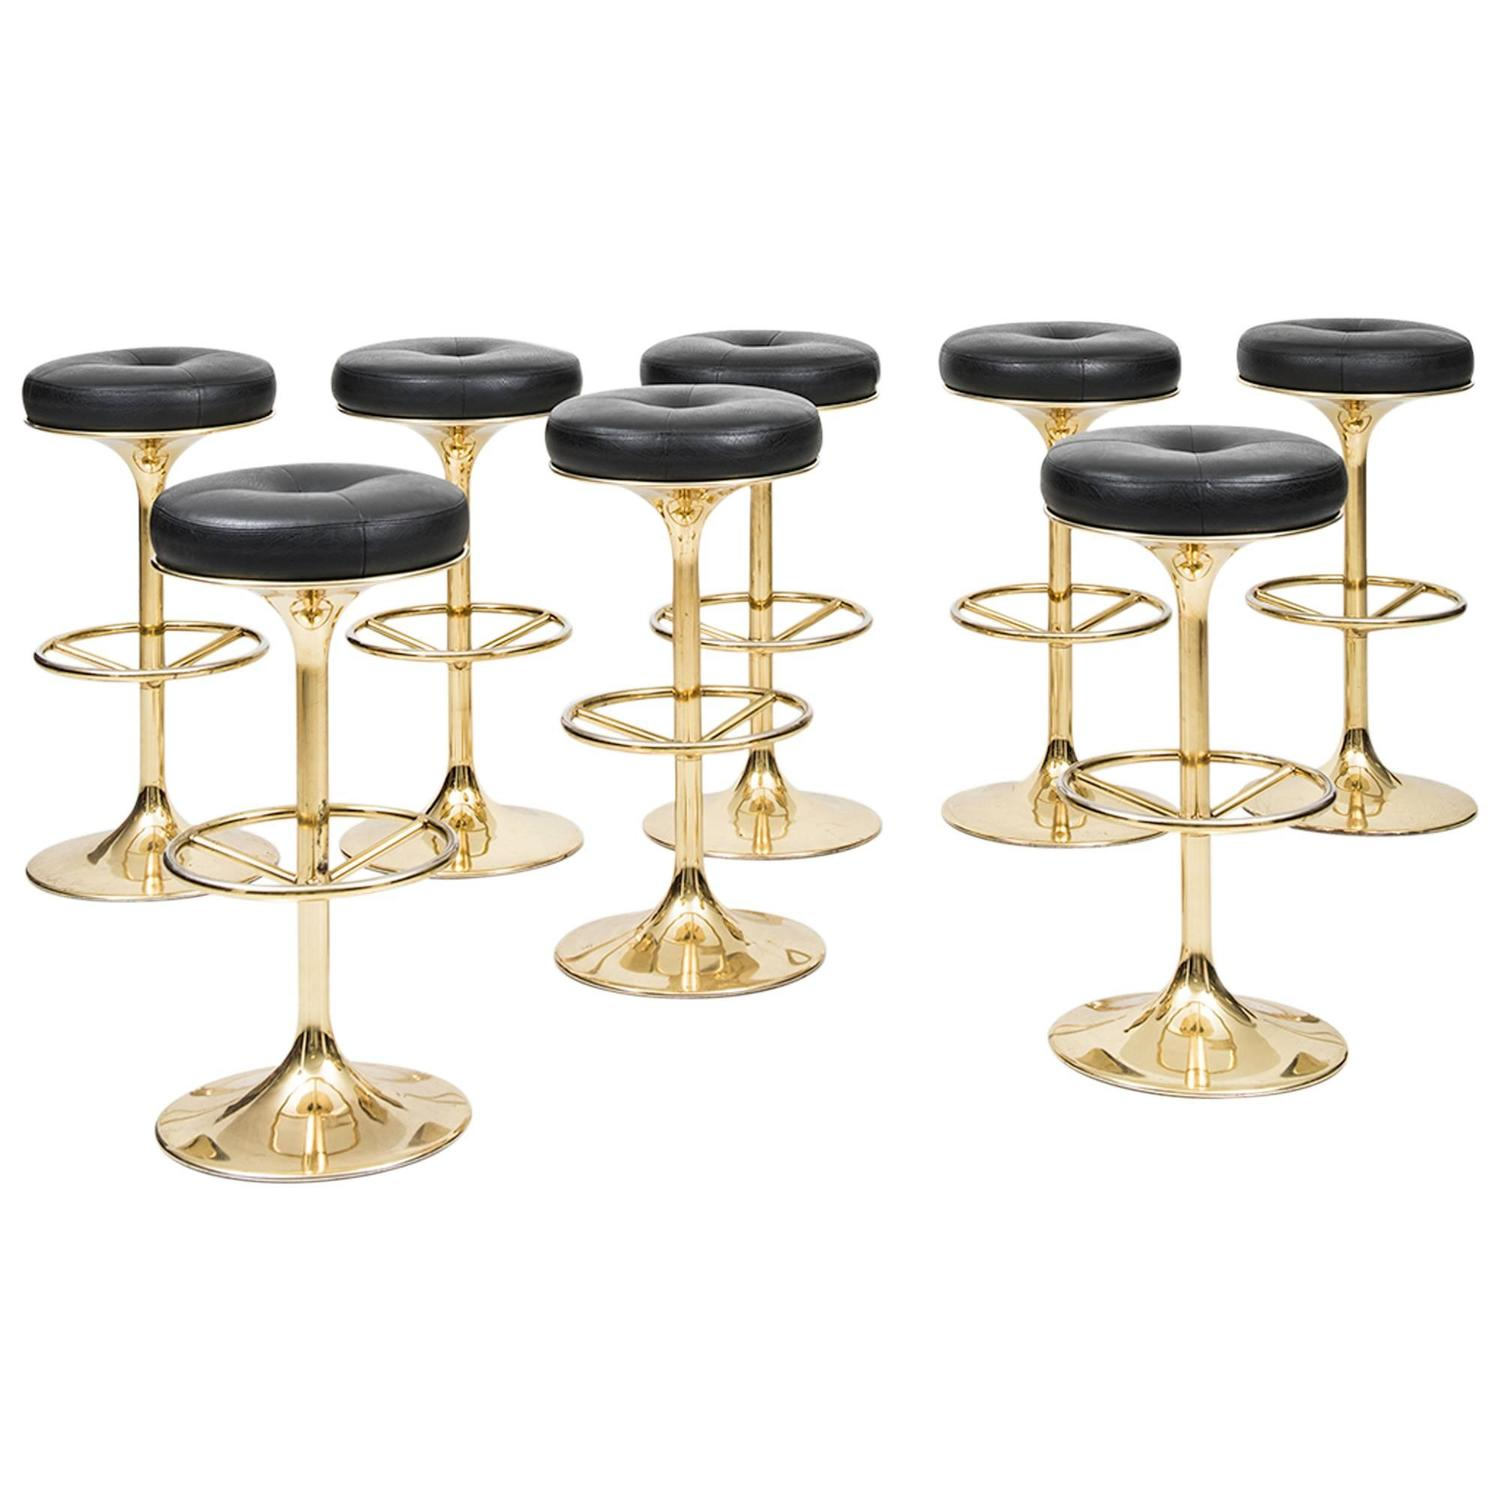 Swedish Bar Stools Börge Johansson Bar Stools Model Classic By Johansson